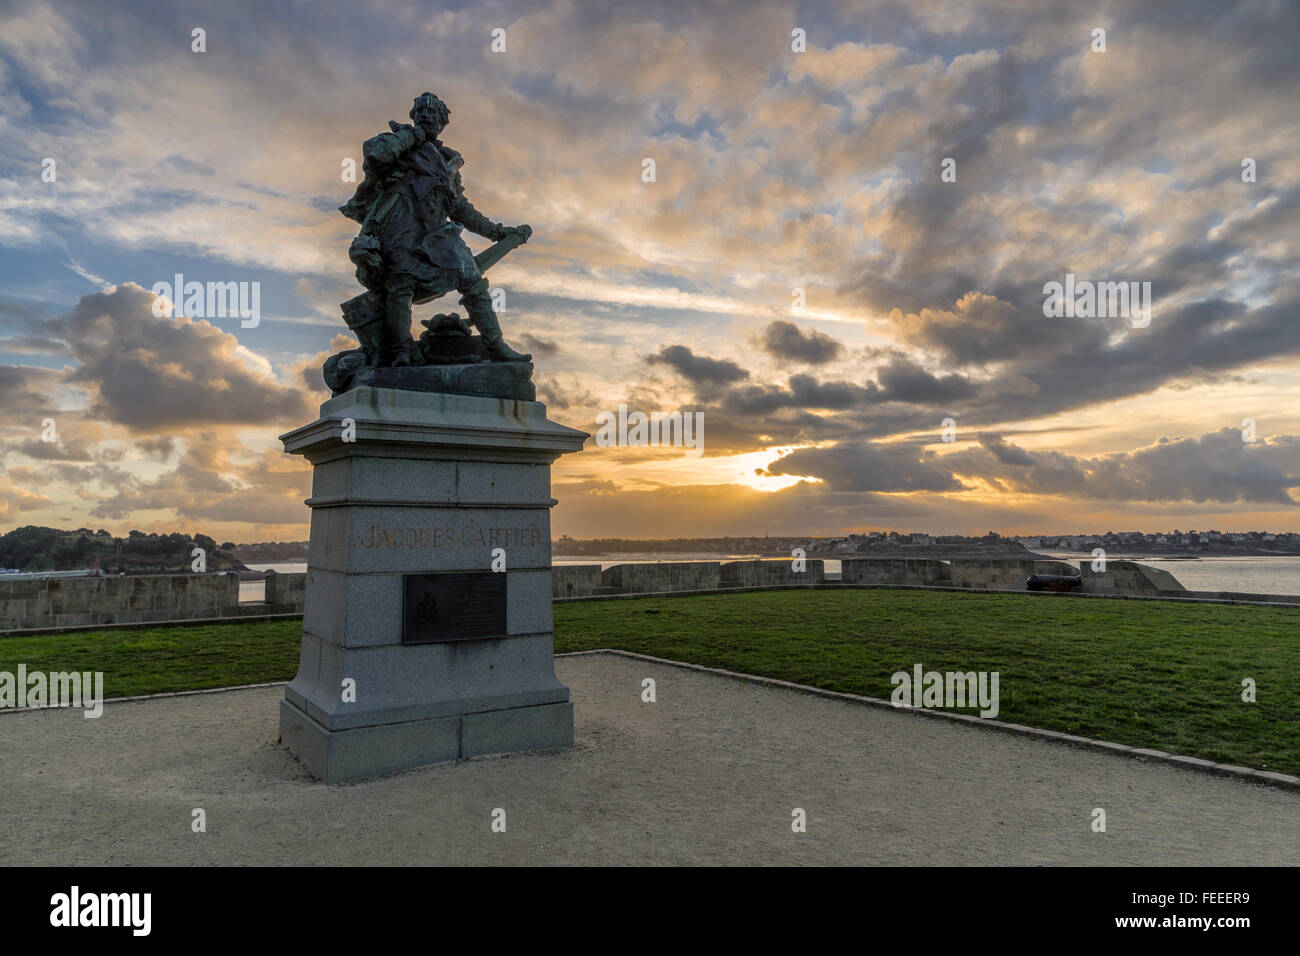 Jacques Cartier statue in Saint Malo, Brittany, France - Stock Image